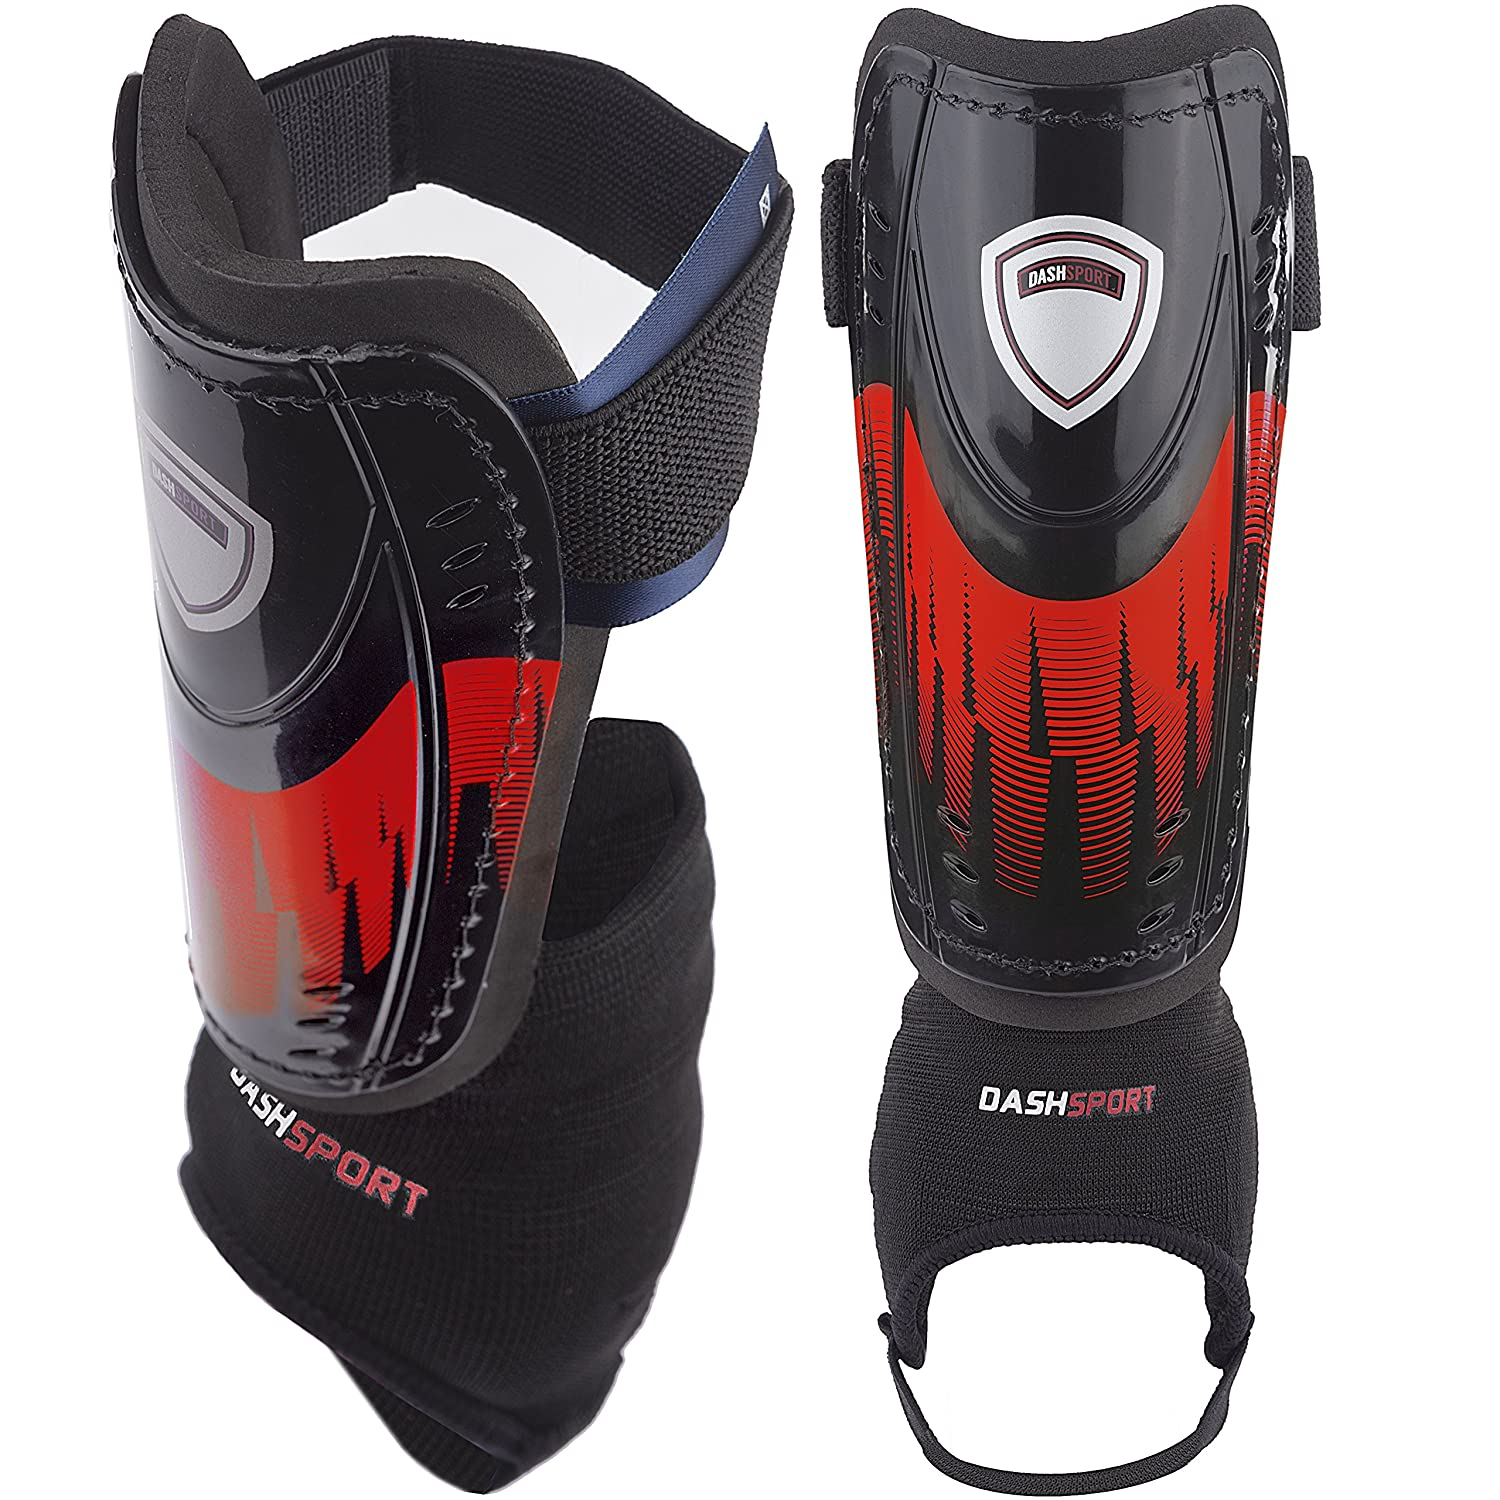 Soccer Shin Guards – ユースサイズ – by dashsport – Bestキッズ用サッカー機器with足首袖 – Great for Boys and Girls B073QXG2G6レッド Extra Small